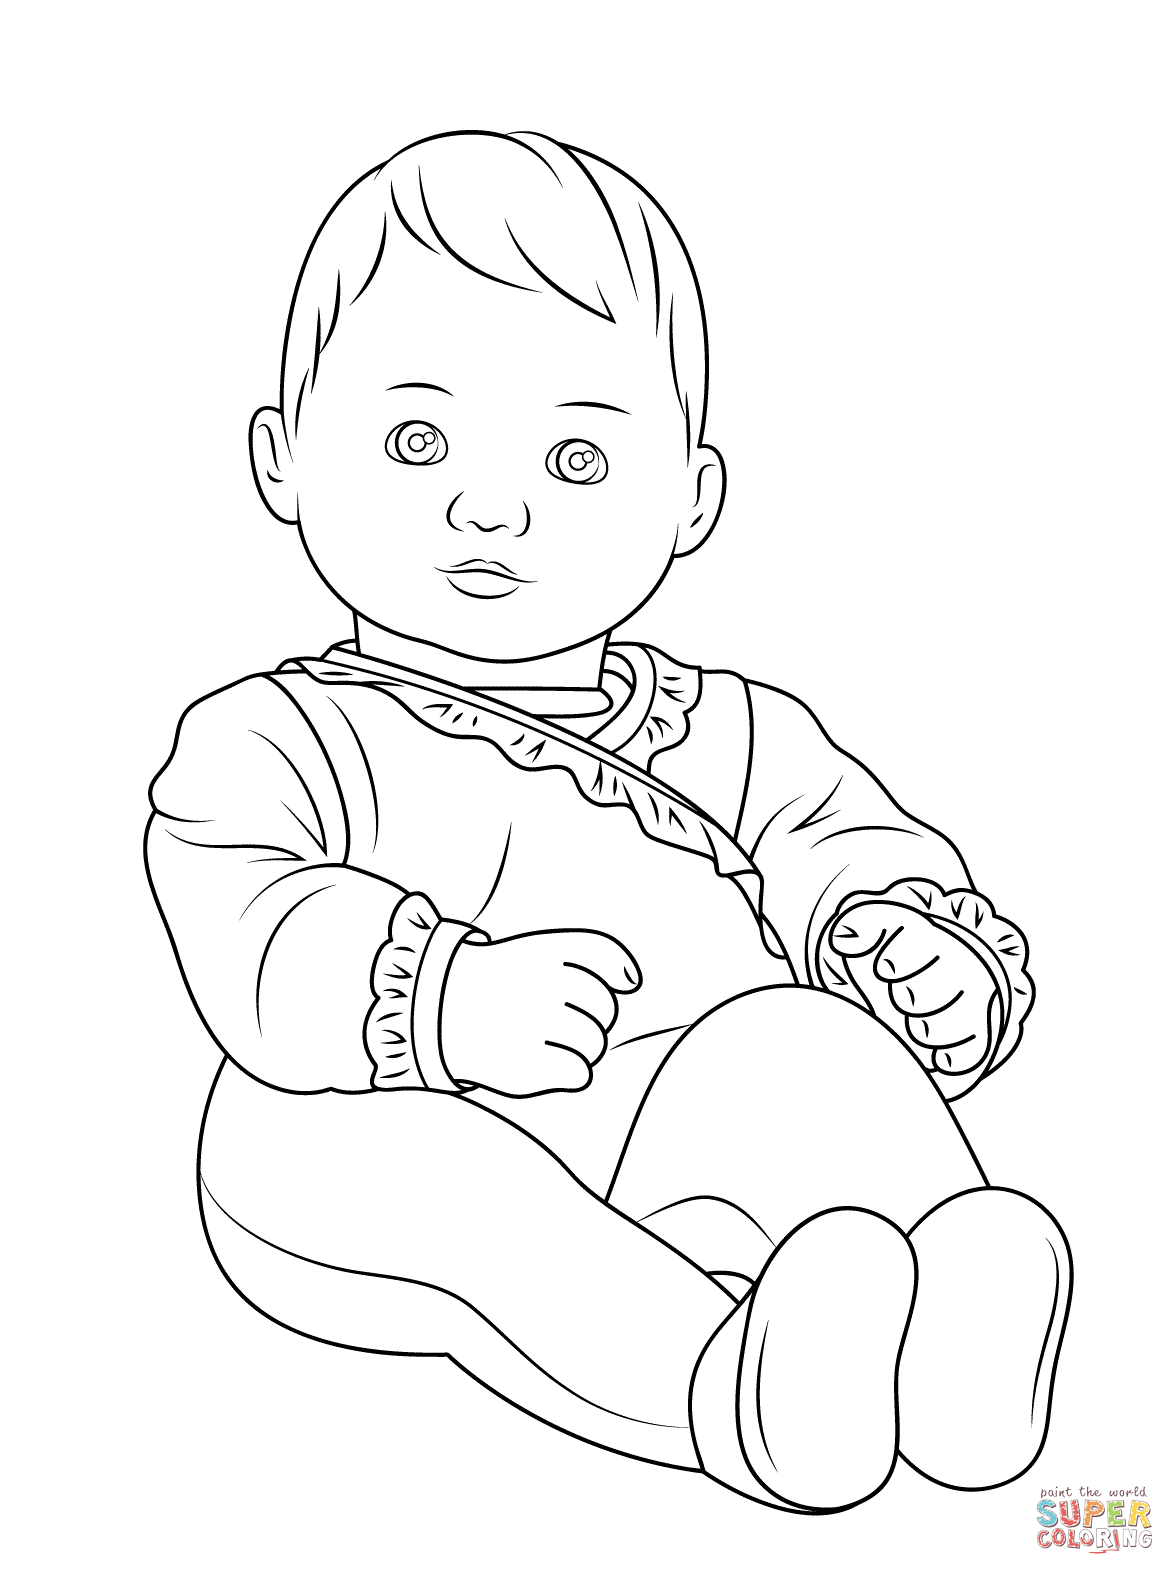 American Girl Isabelle Doll coloring page | Free Printable ...